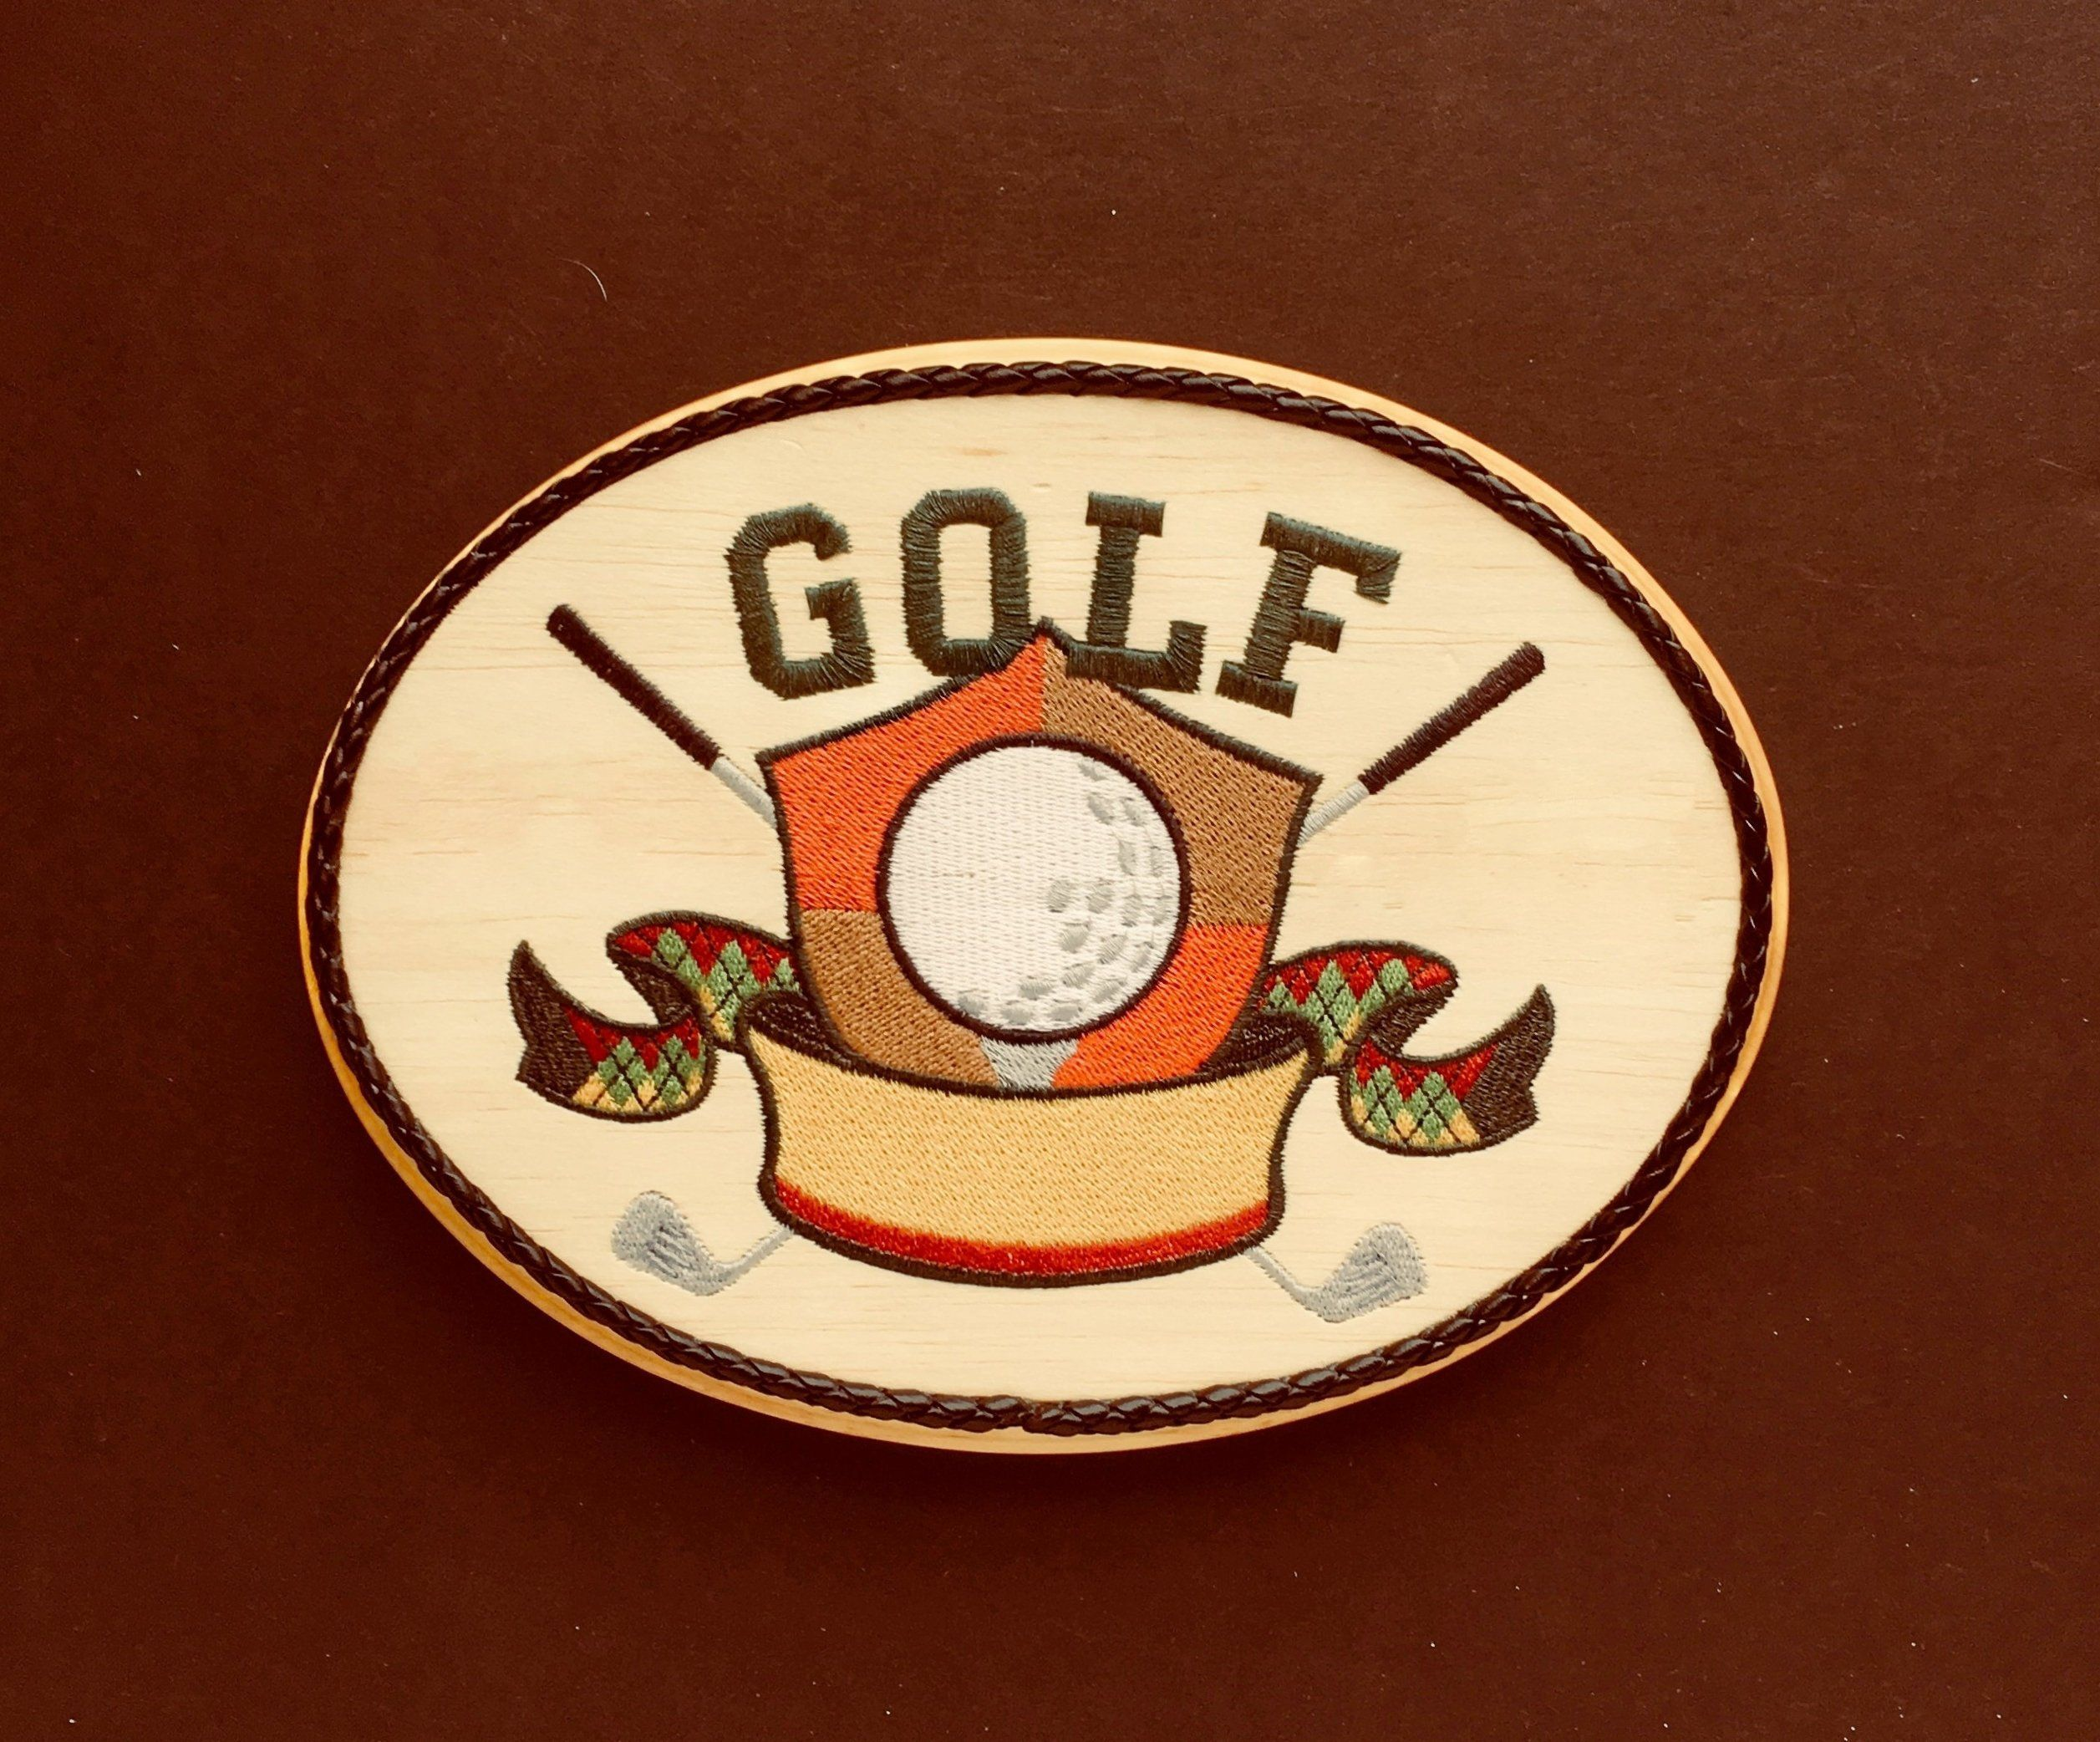 Golf Wall Decor, Balsa Wood Embroidery Art, Golf Crest, Golfing Decor,  Office, Family Room, Den, Man Cave, Gift For Golfer, Lady Golf Gifts By ...